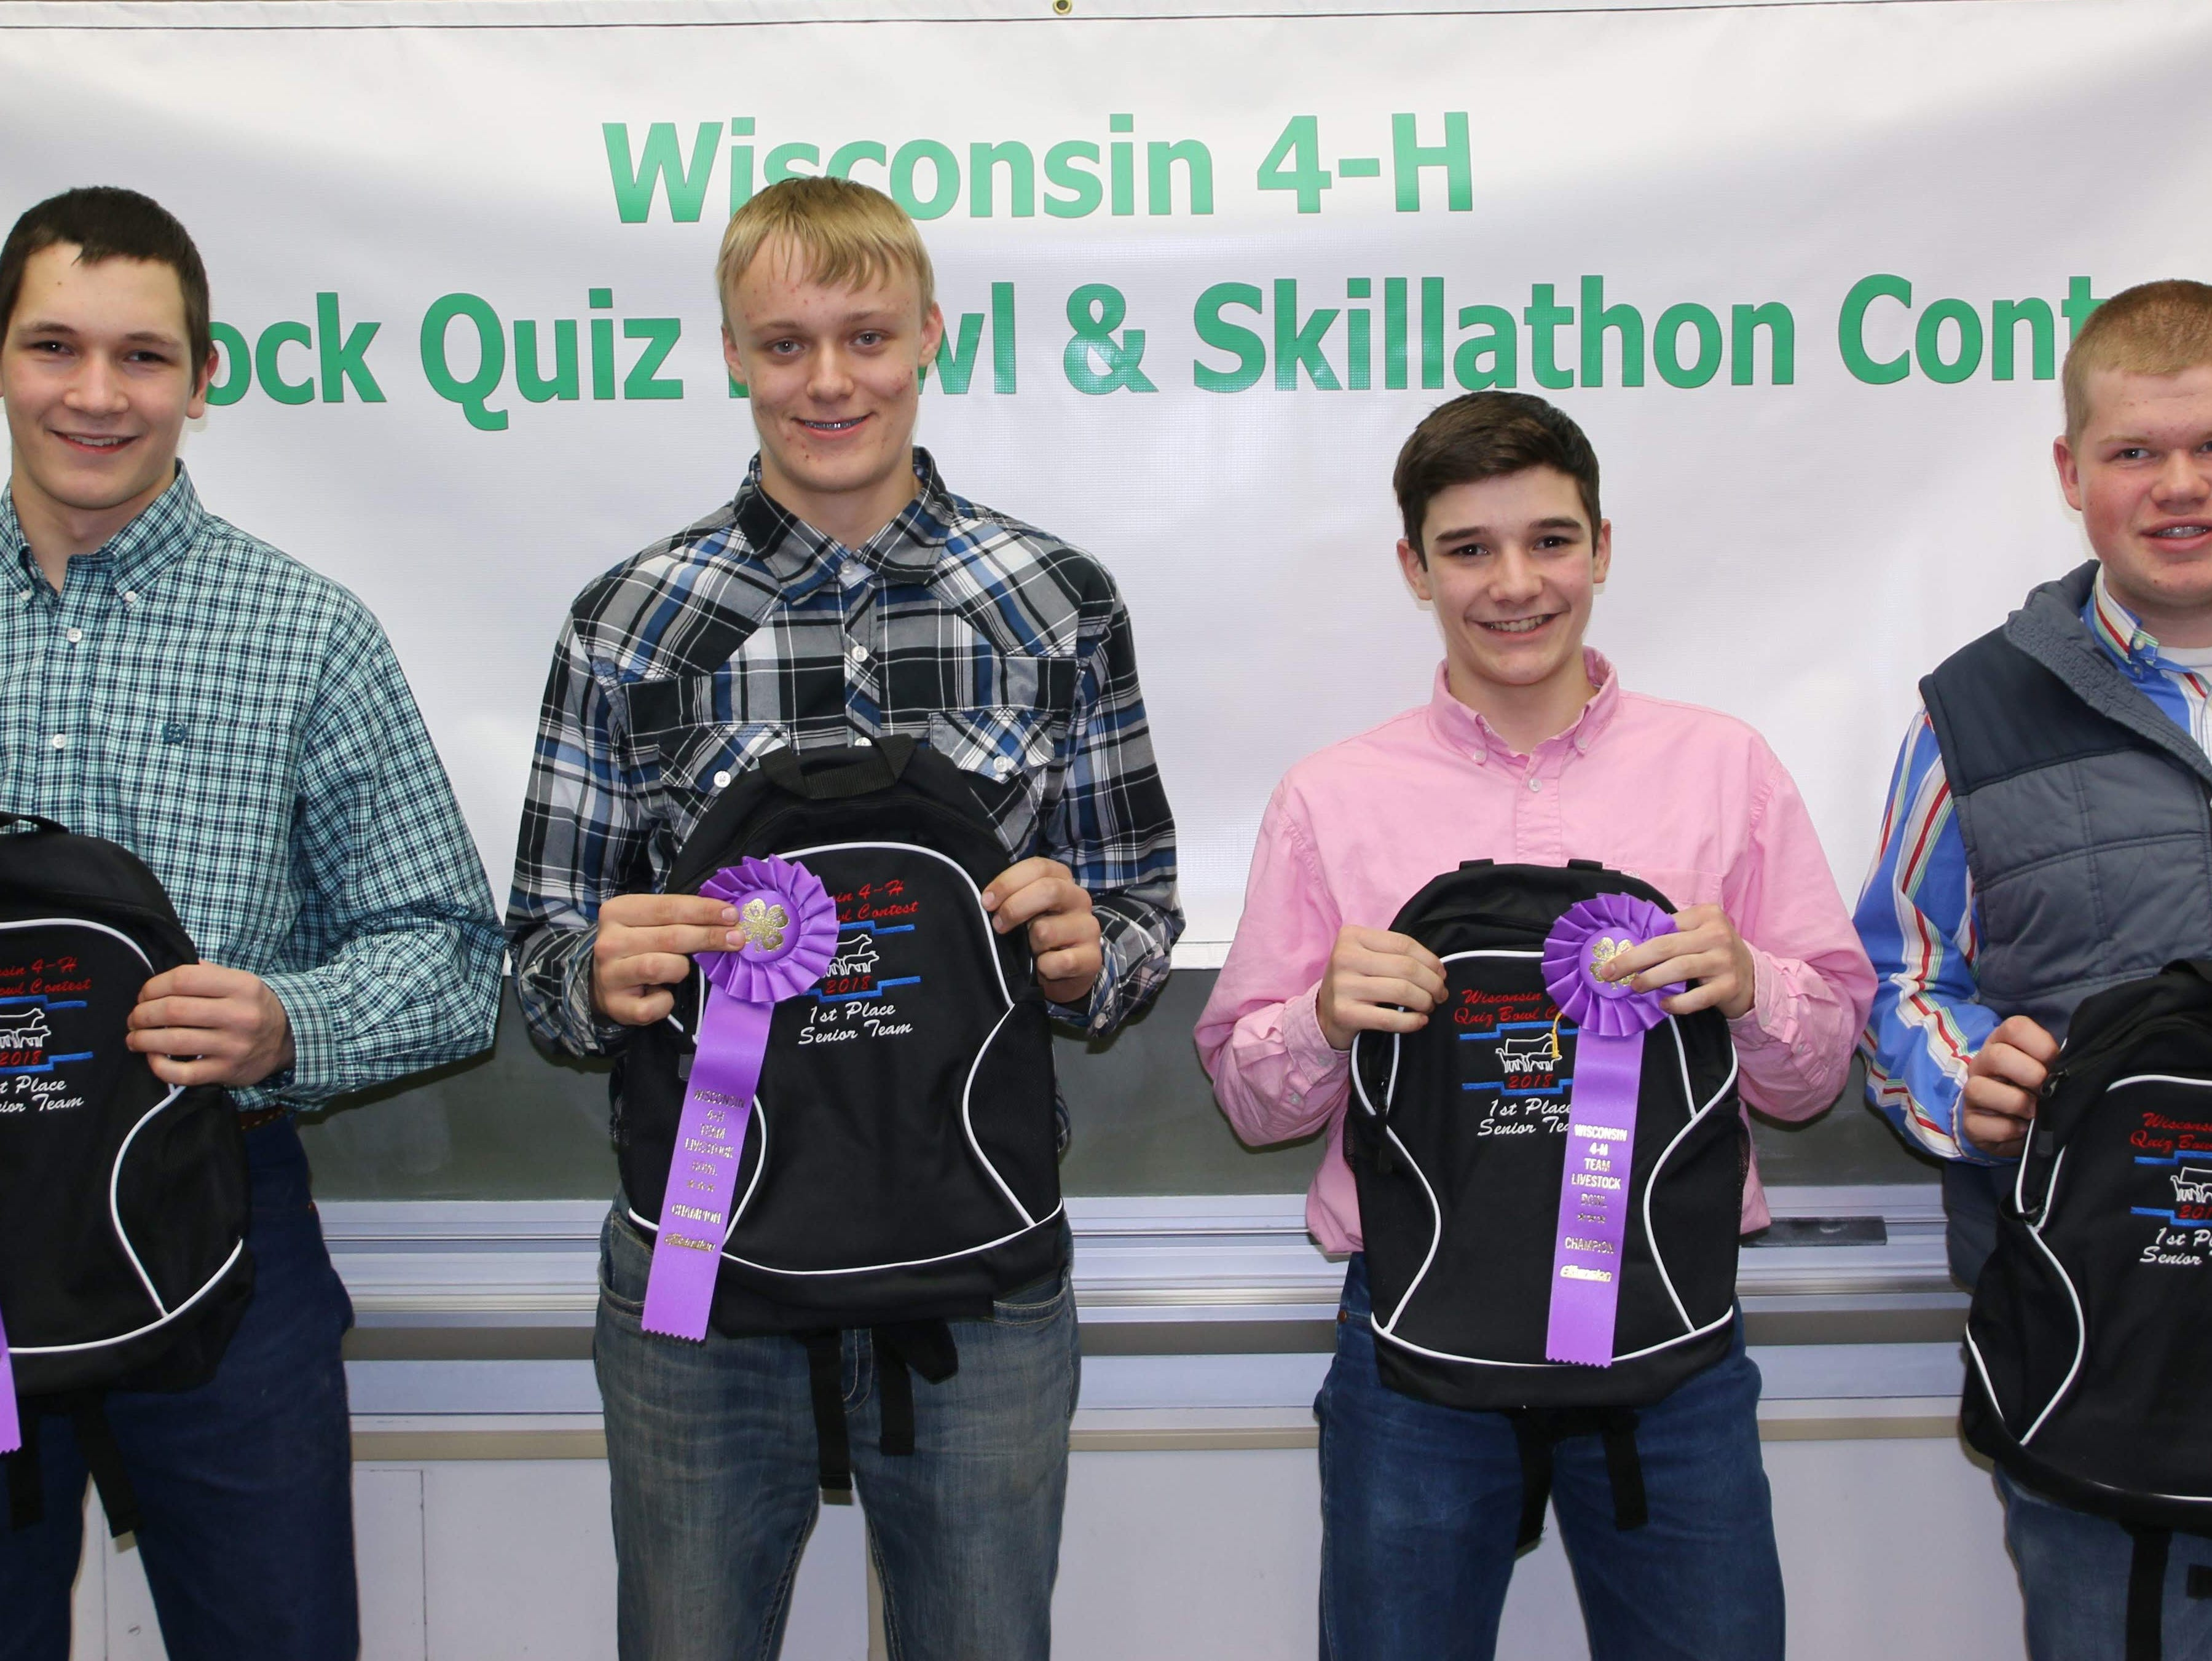 Representing Wisconsin at the Aksarben Livestock Quizbowl were Columbia County team members (from left) Justin Taylor, Zach Mickelson, Hayden Taylor and Tyler Cross.  They are coached by Todd Taylor.